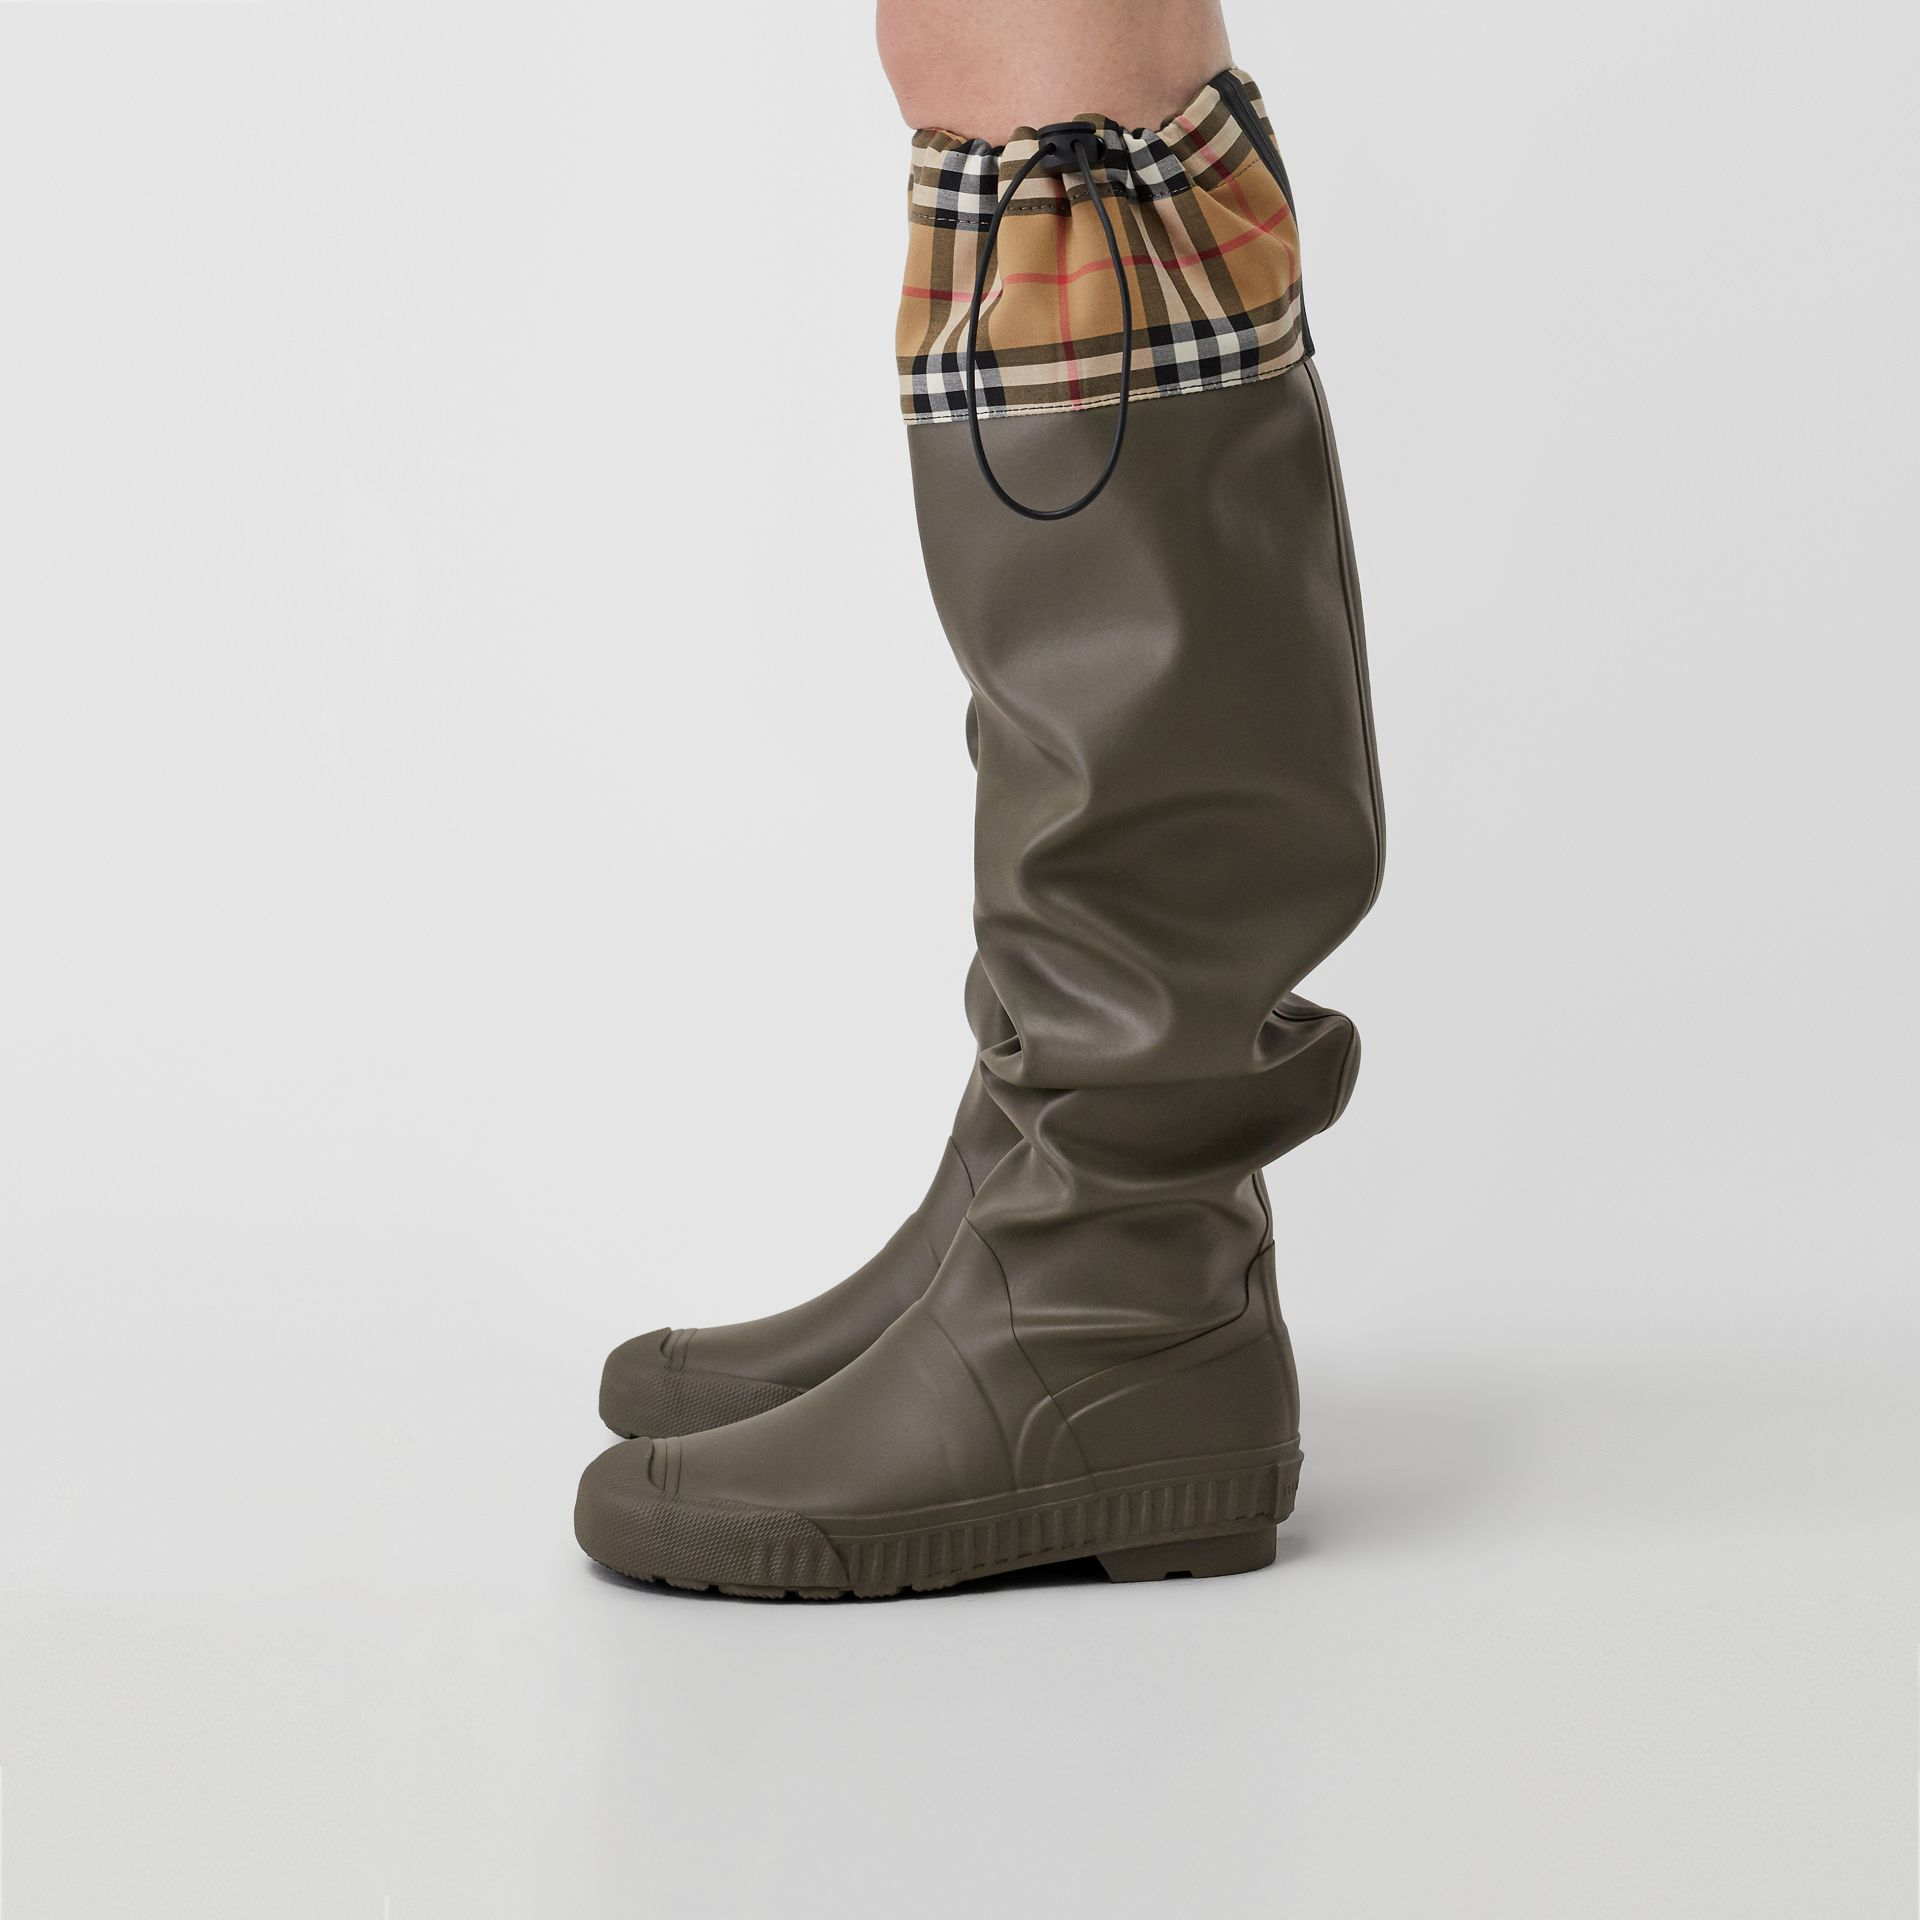 Vintage Check and Rubber Knee-high Rain Boots in Military Green - Women | Burberry Canada - gallery image 2